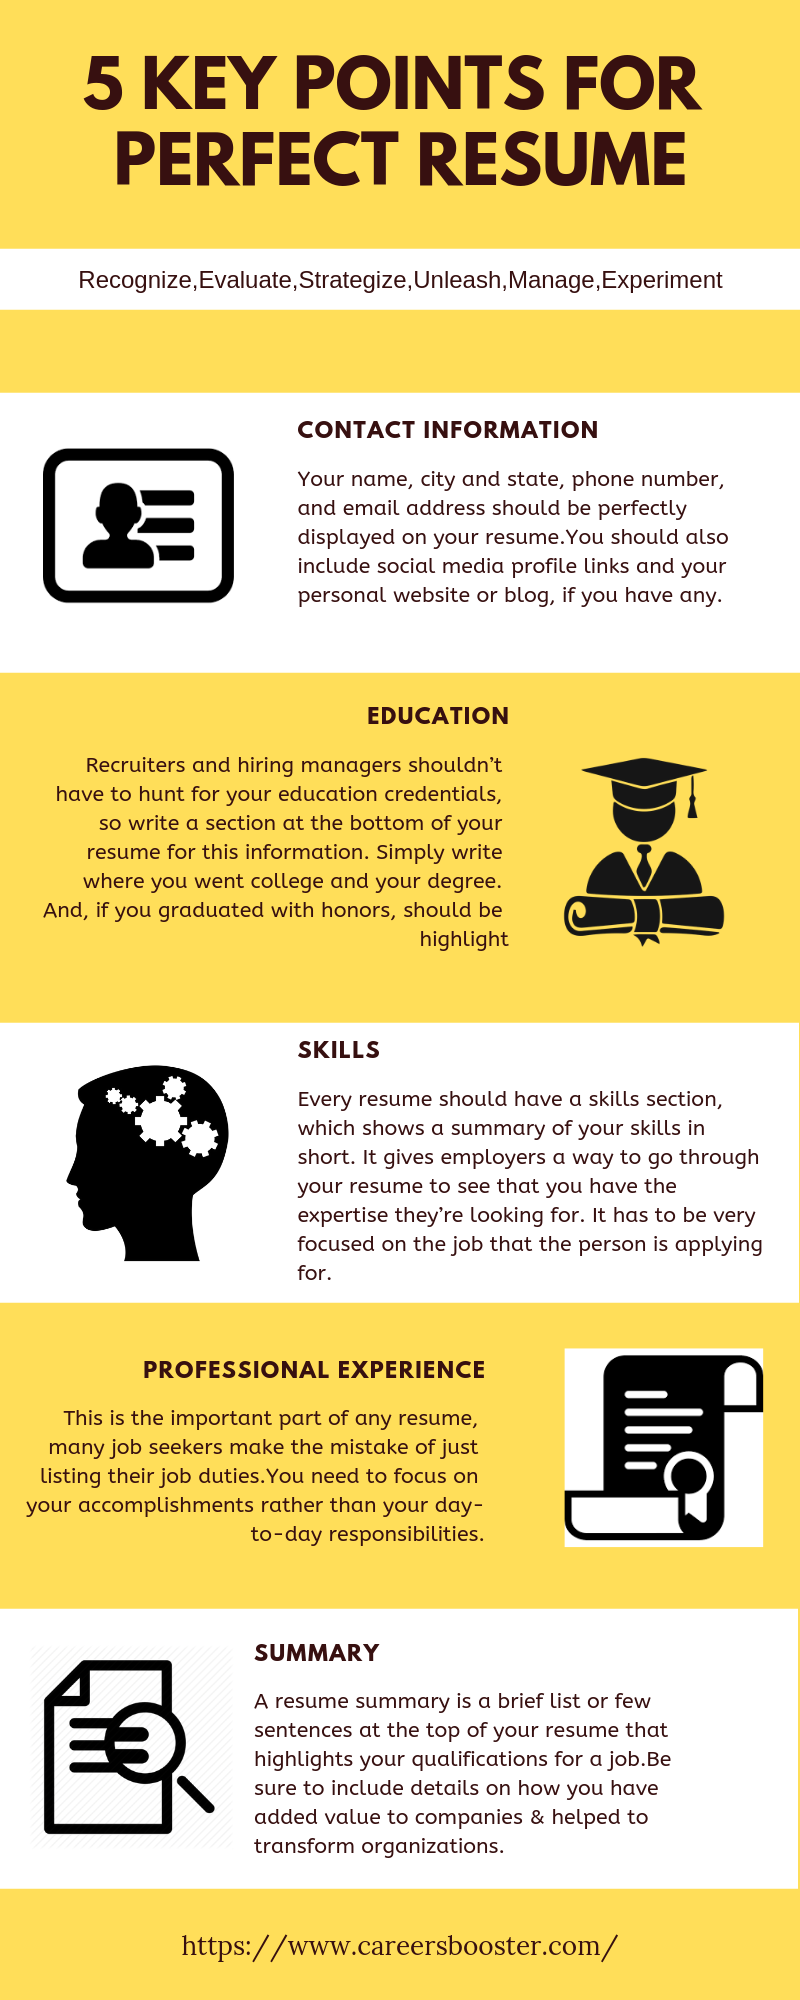 5 KEY POINTS FOR PERFECT RESUME Resume writing services